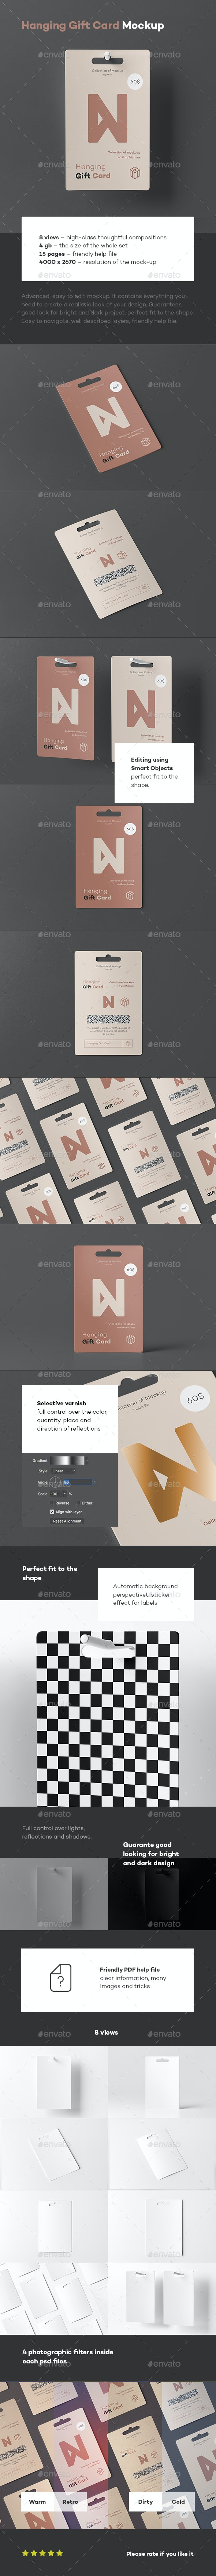 Hanging Gift Card Mock-up - Miscellaneous Print